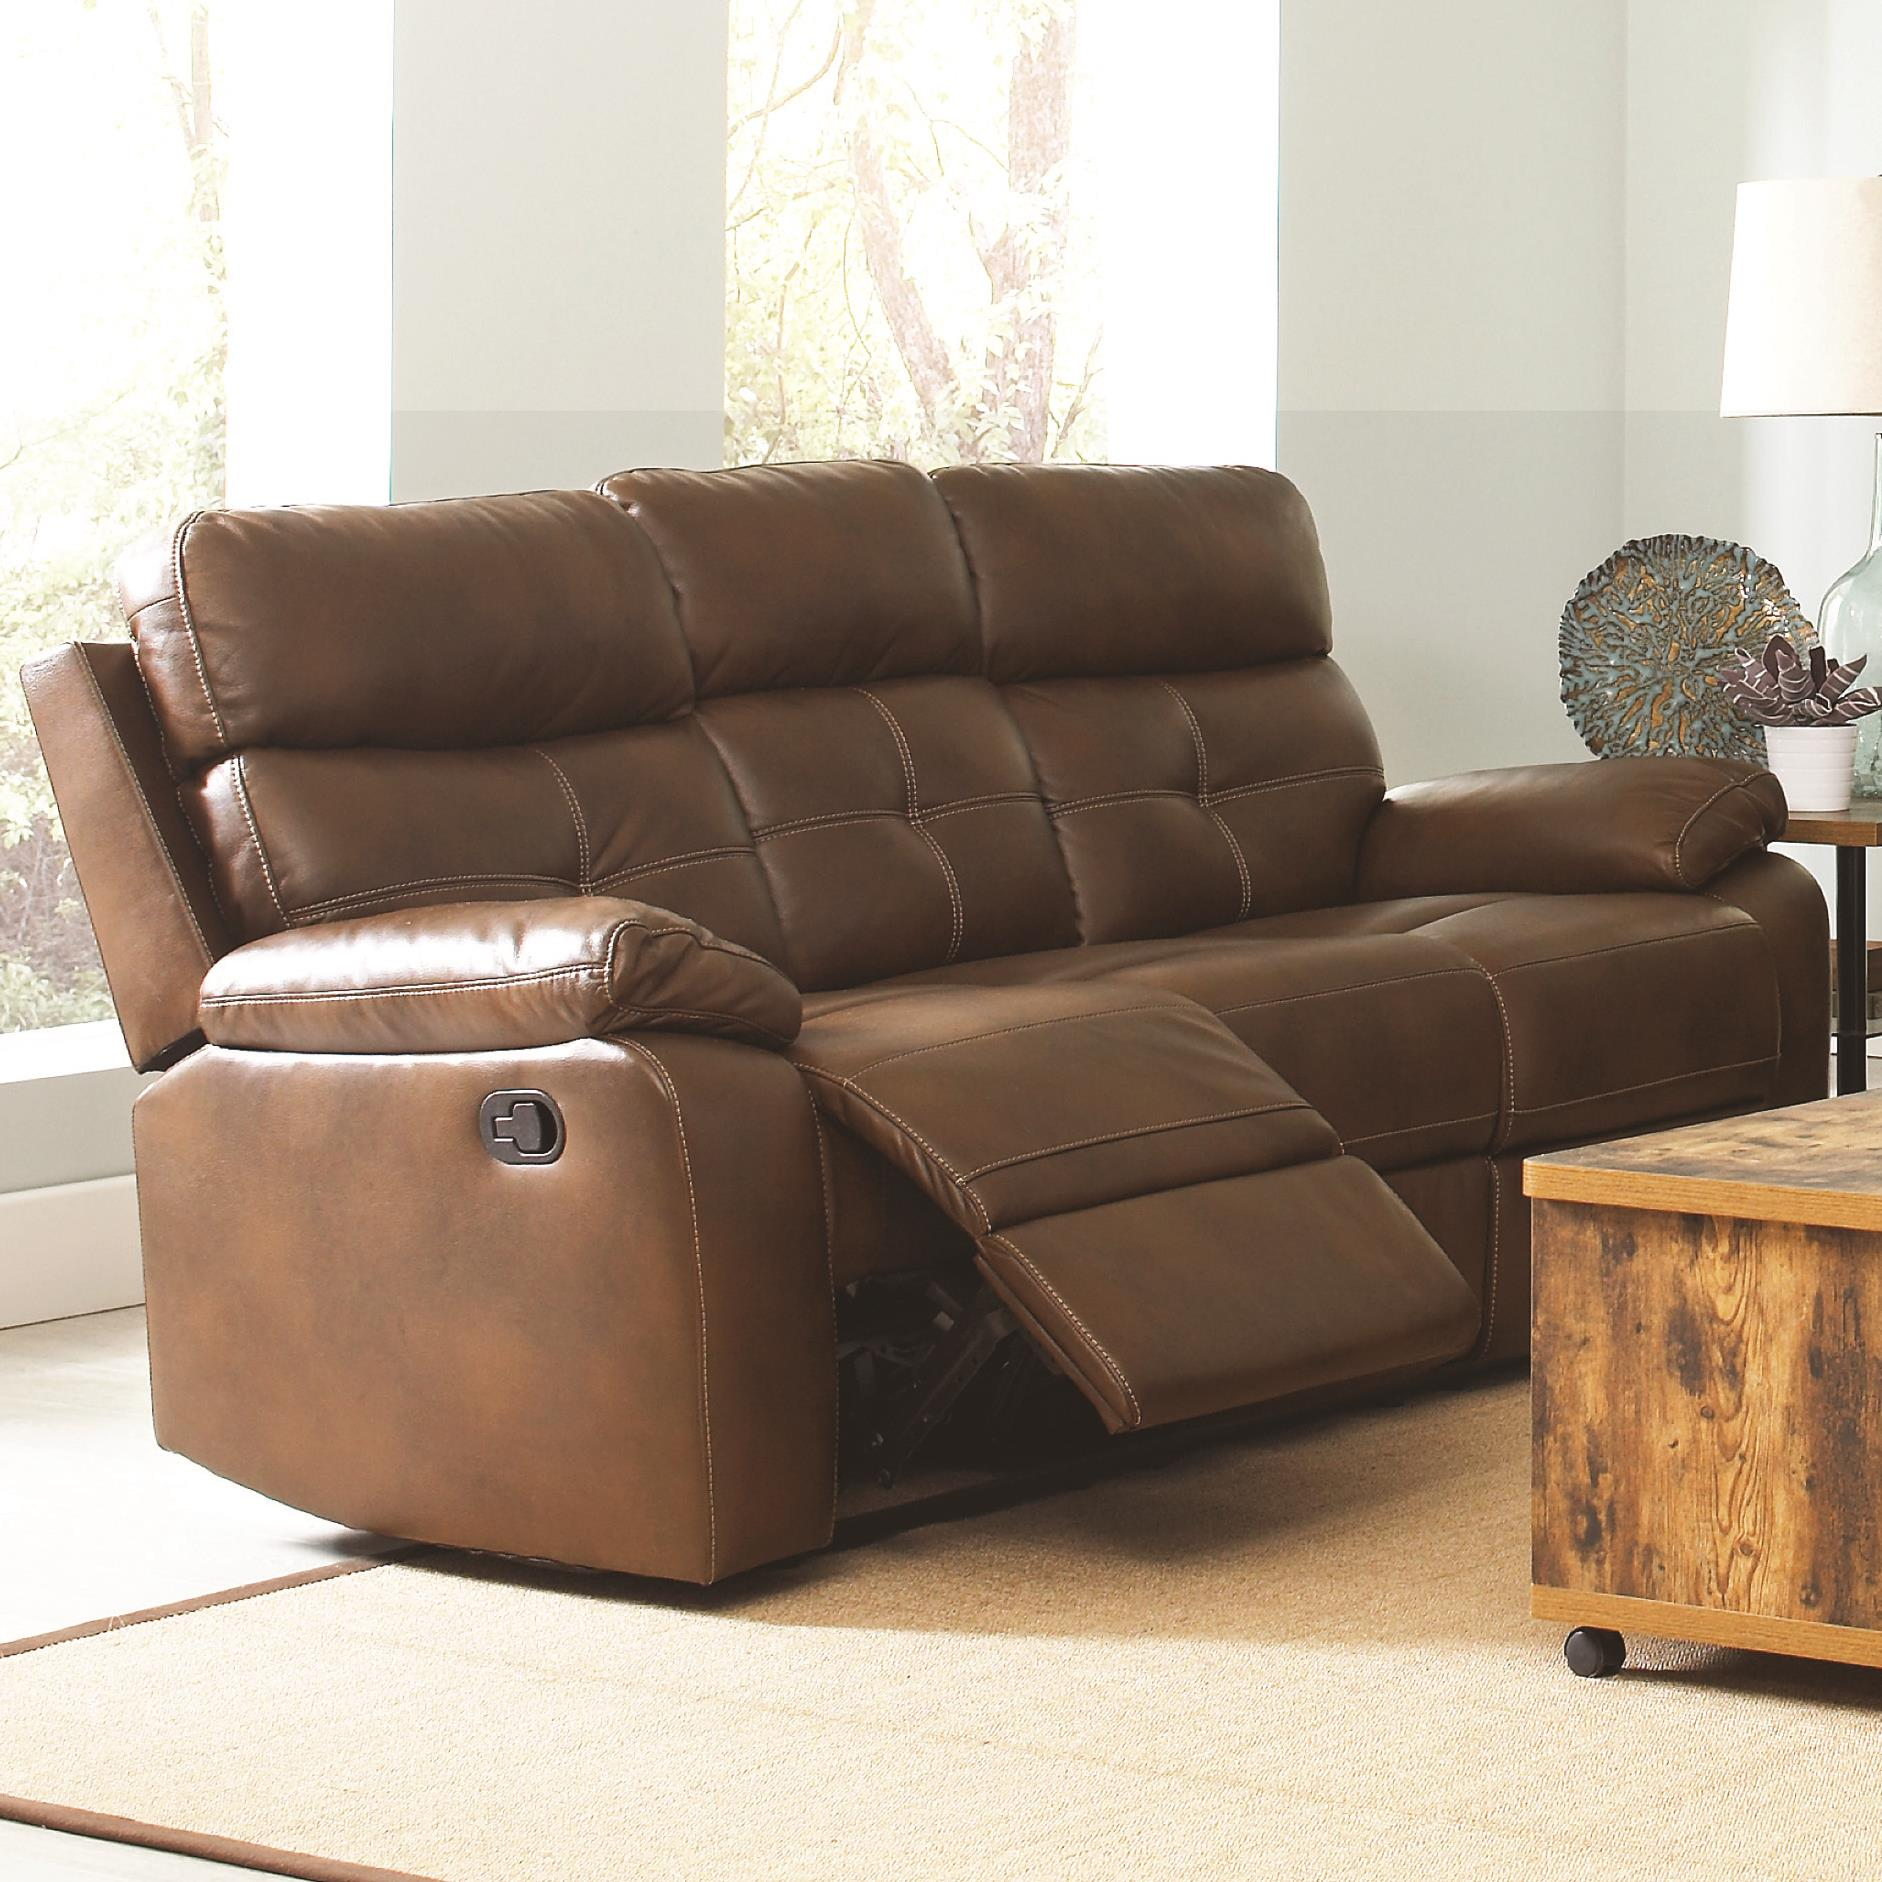 Damiano Casual Faux Leather Reclining Sofa With Button